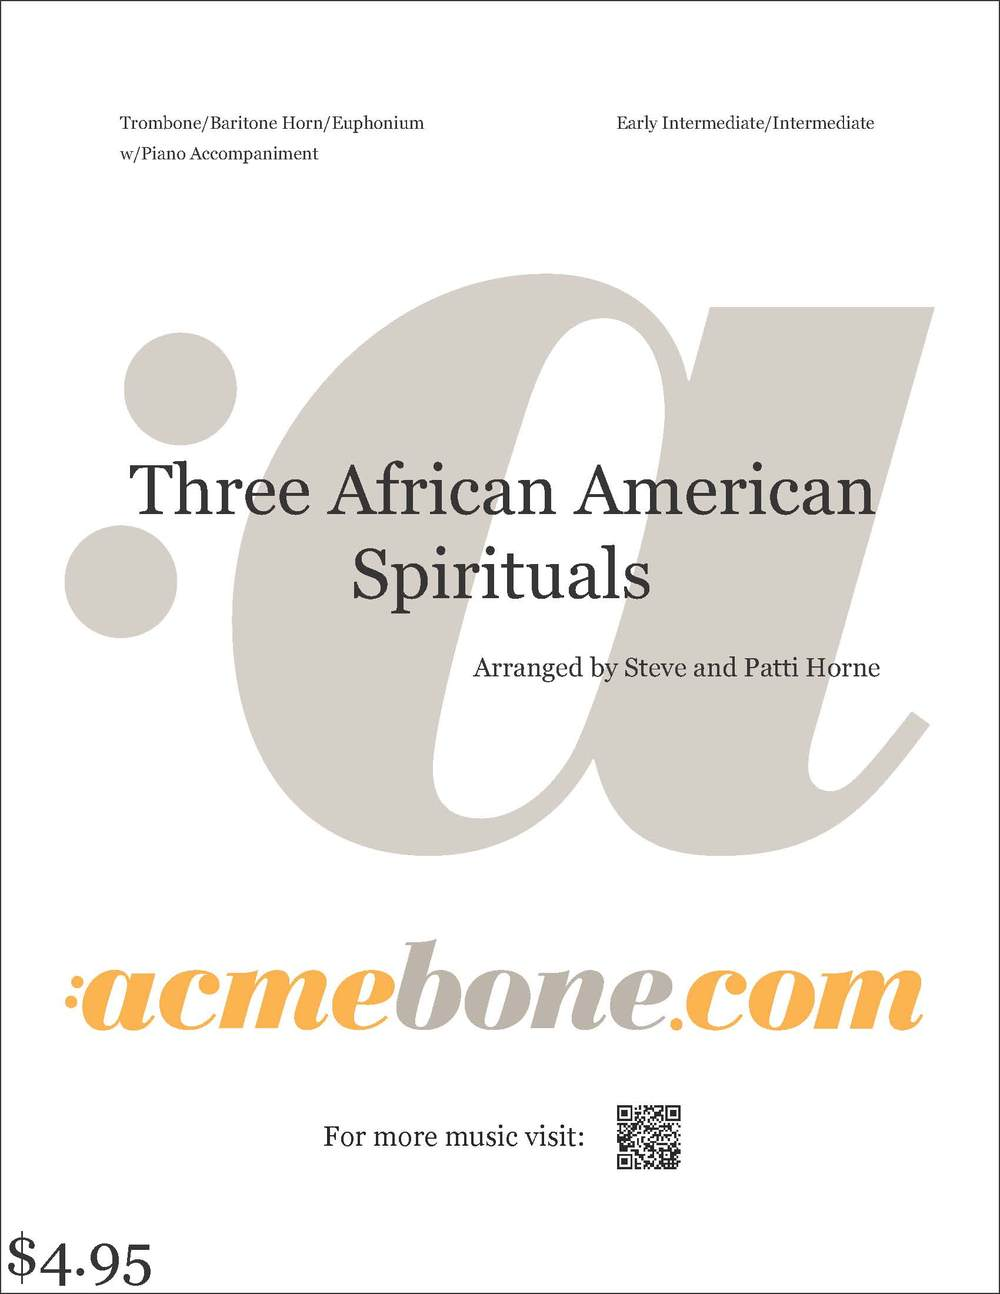 Three African American Spirituals_digital_cover_w-bo_price.jpg